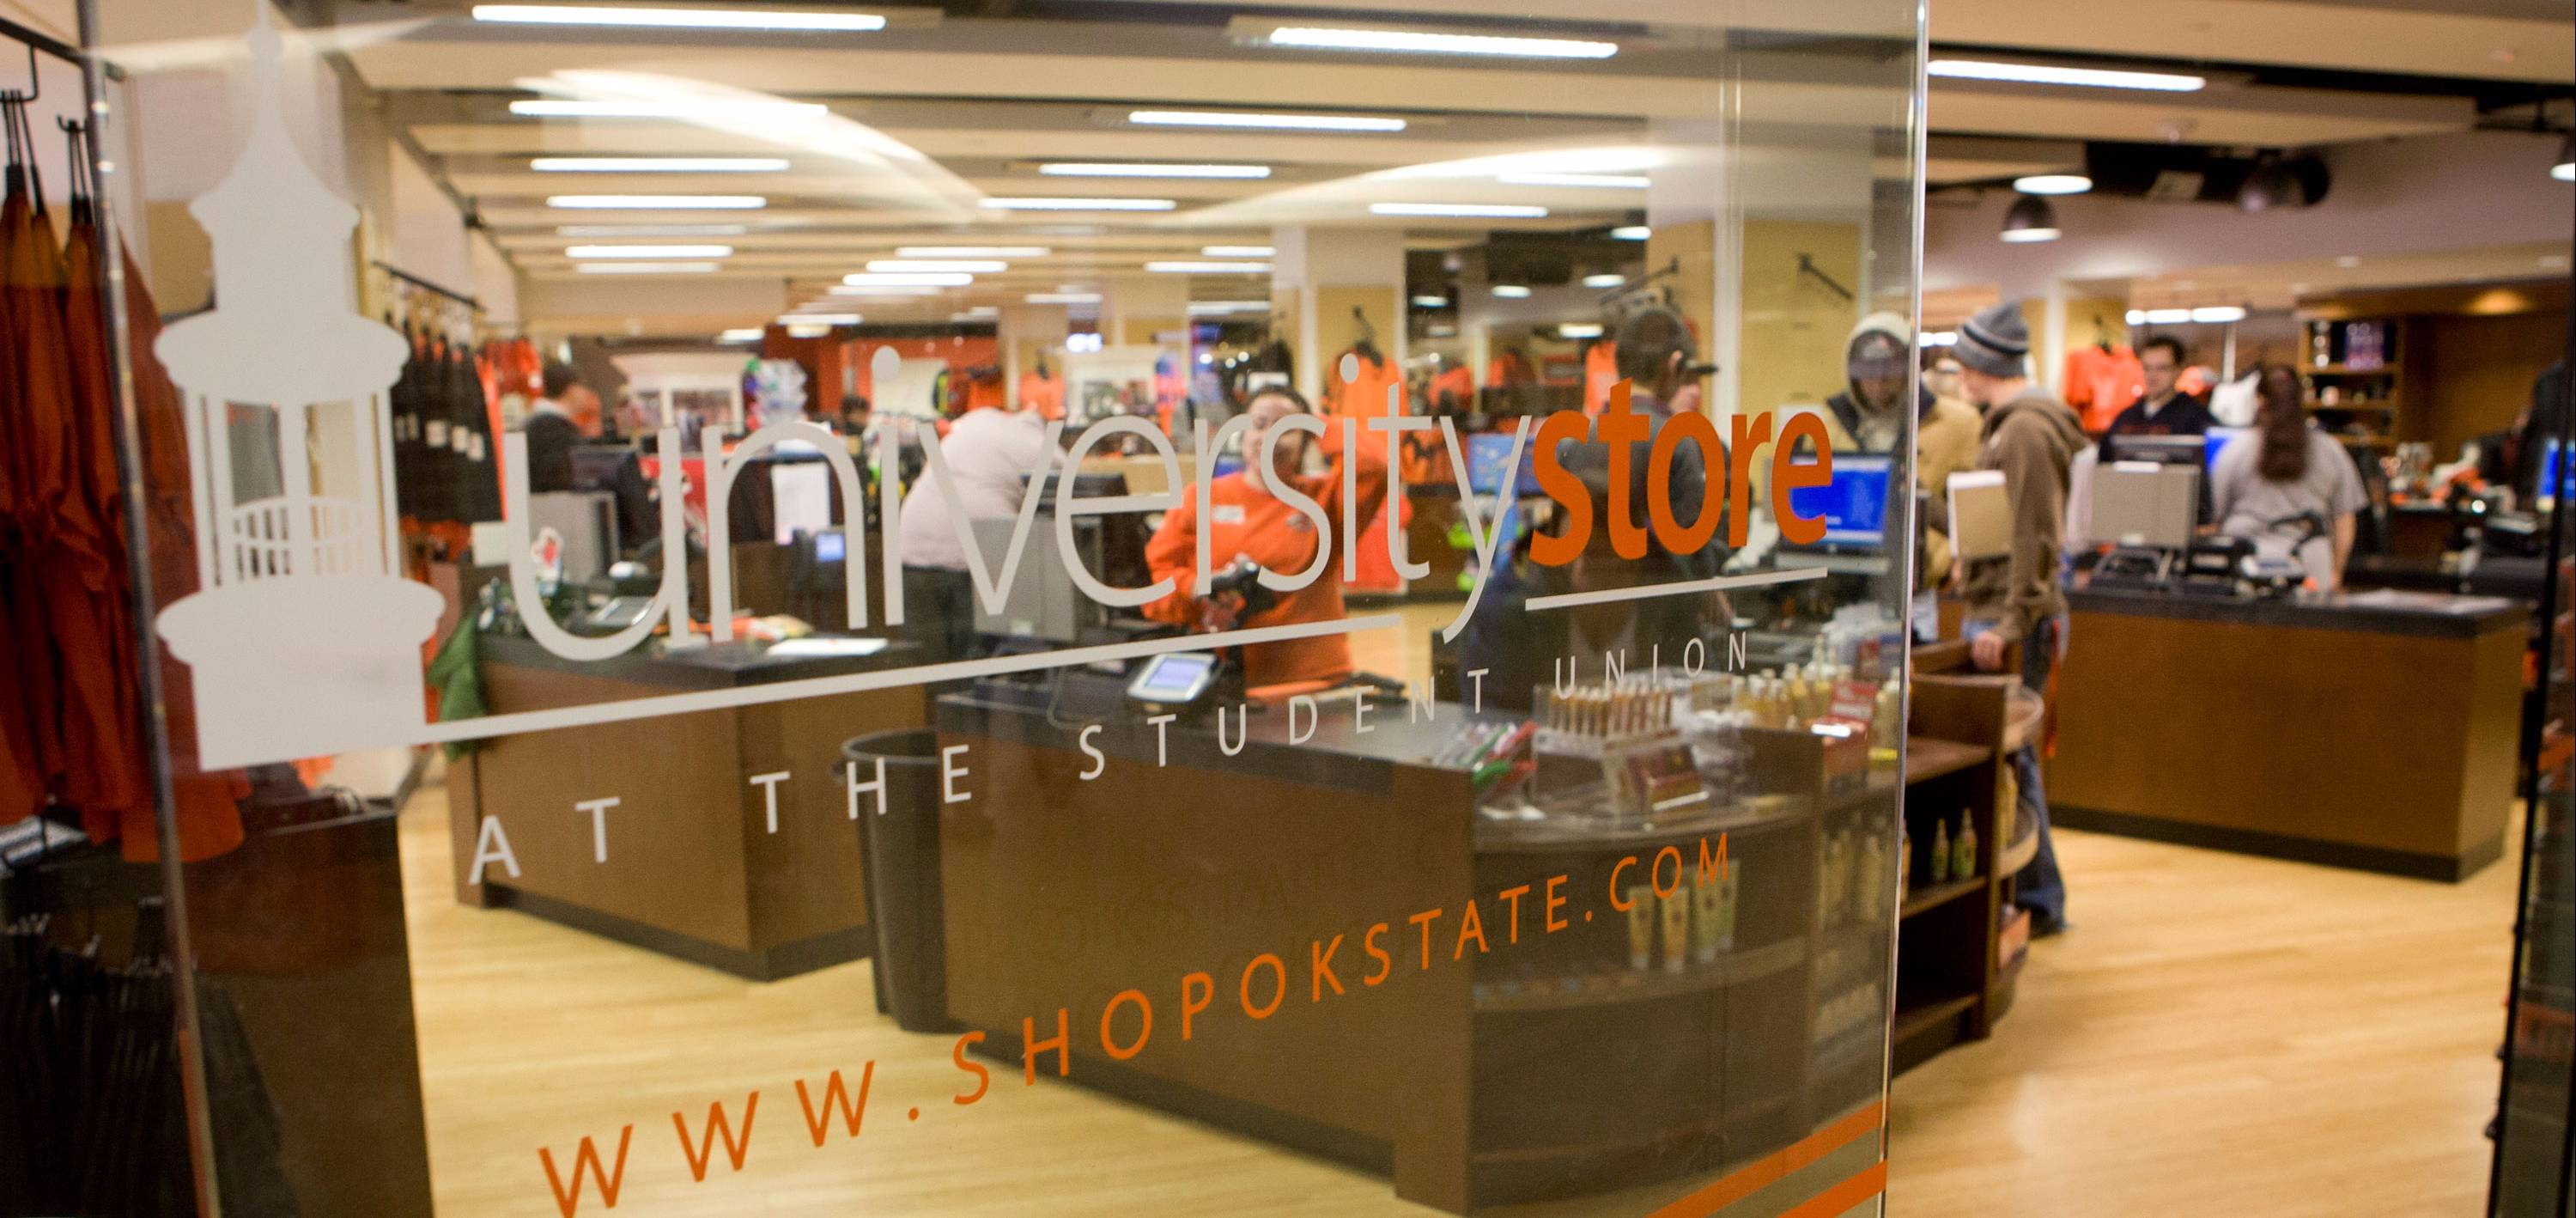 University Store Store Front